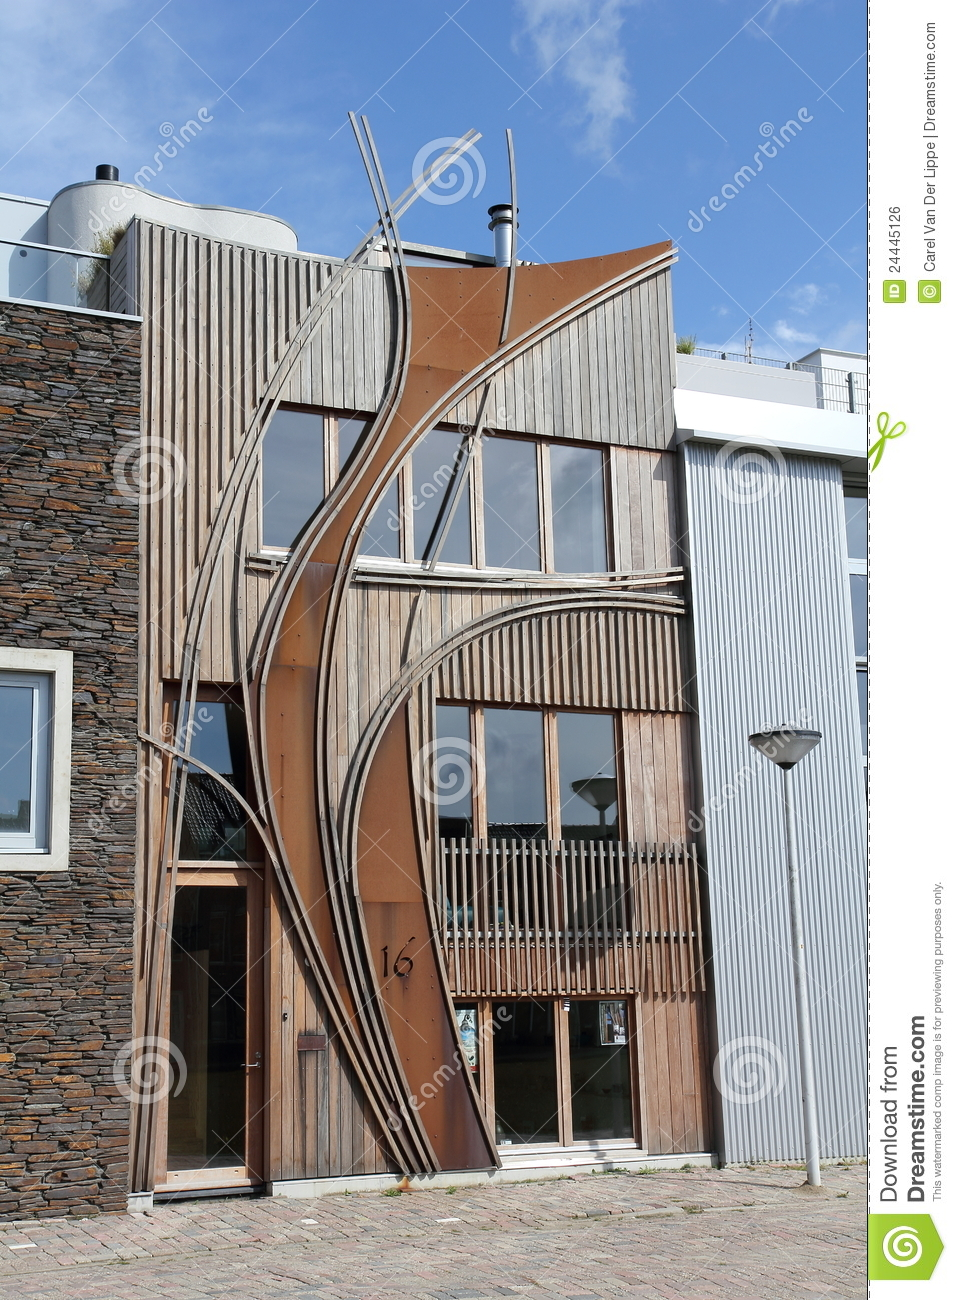 Modern dutch home with wooden curved facade royalty free - Facade de maison provencale ...